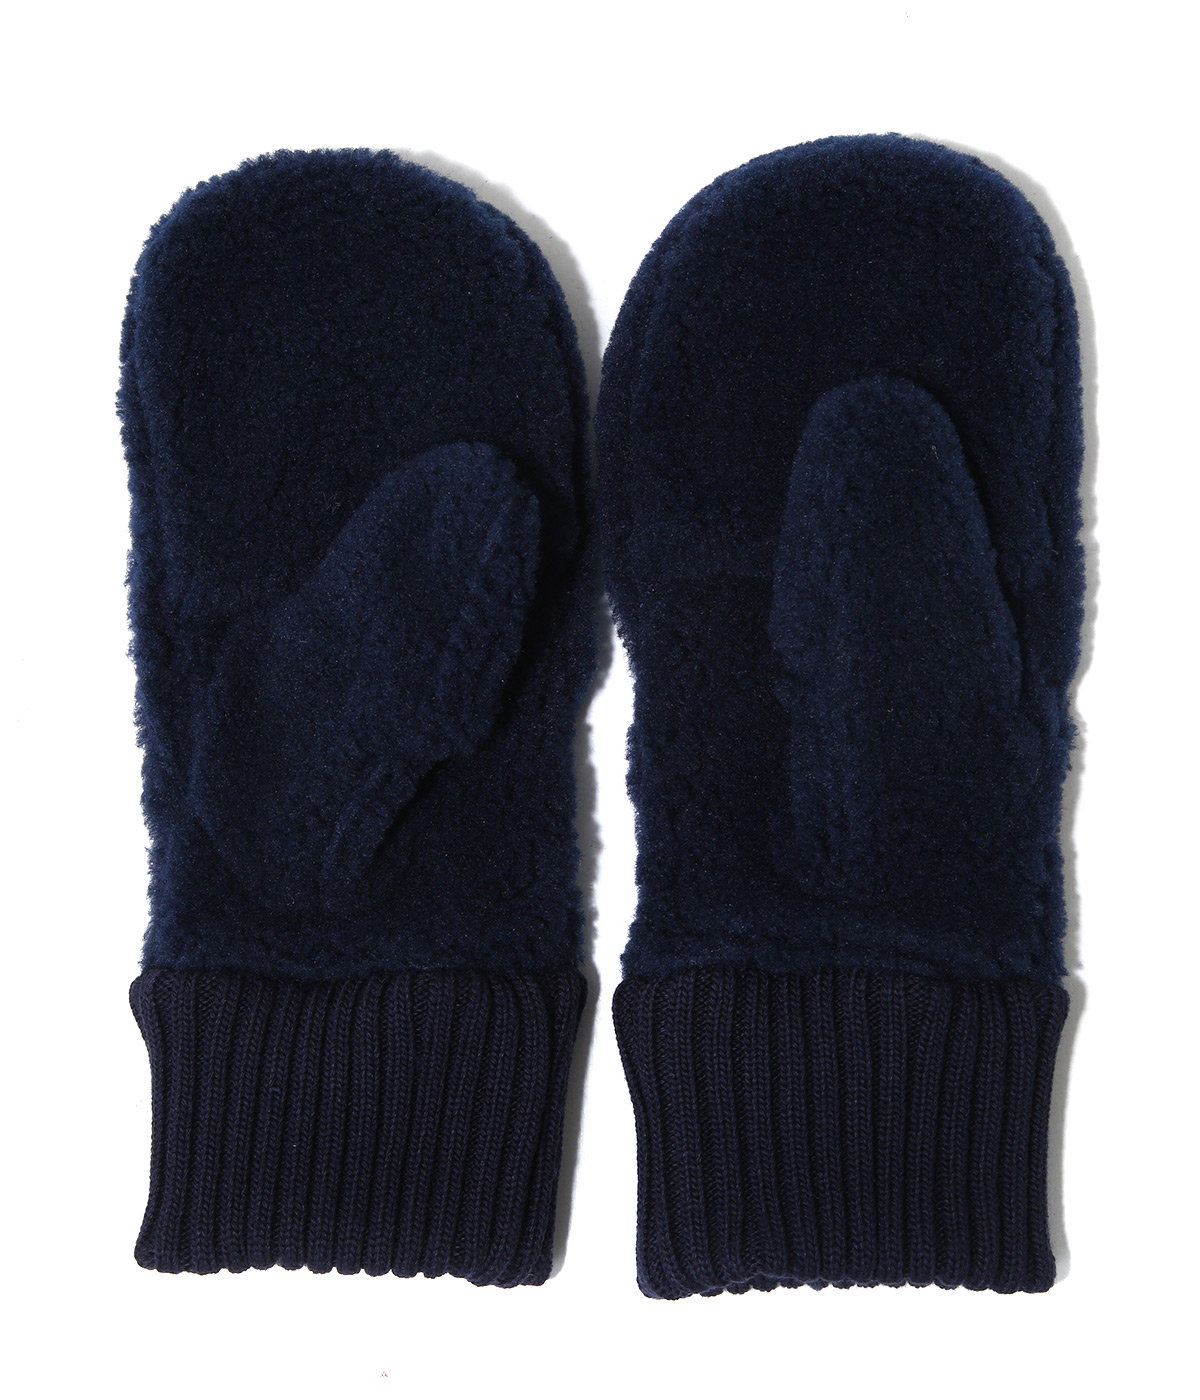 FP COVER MITTEN